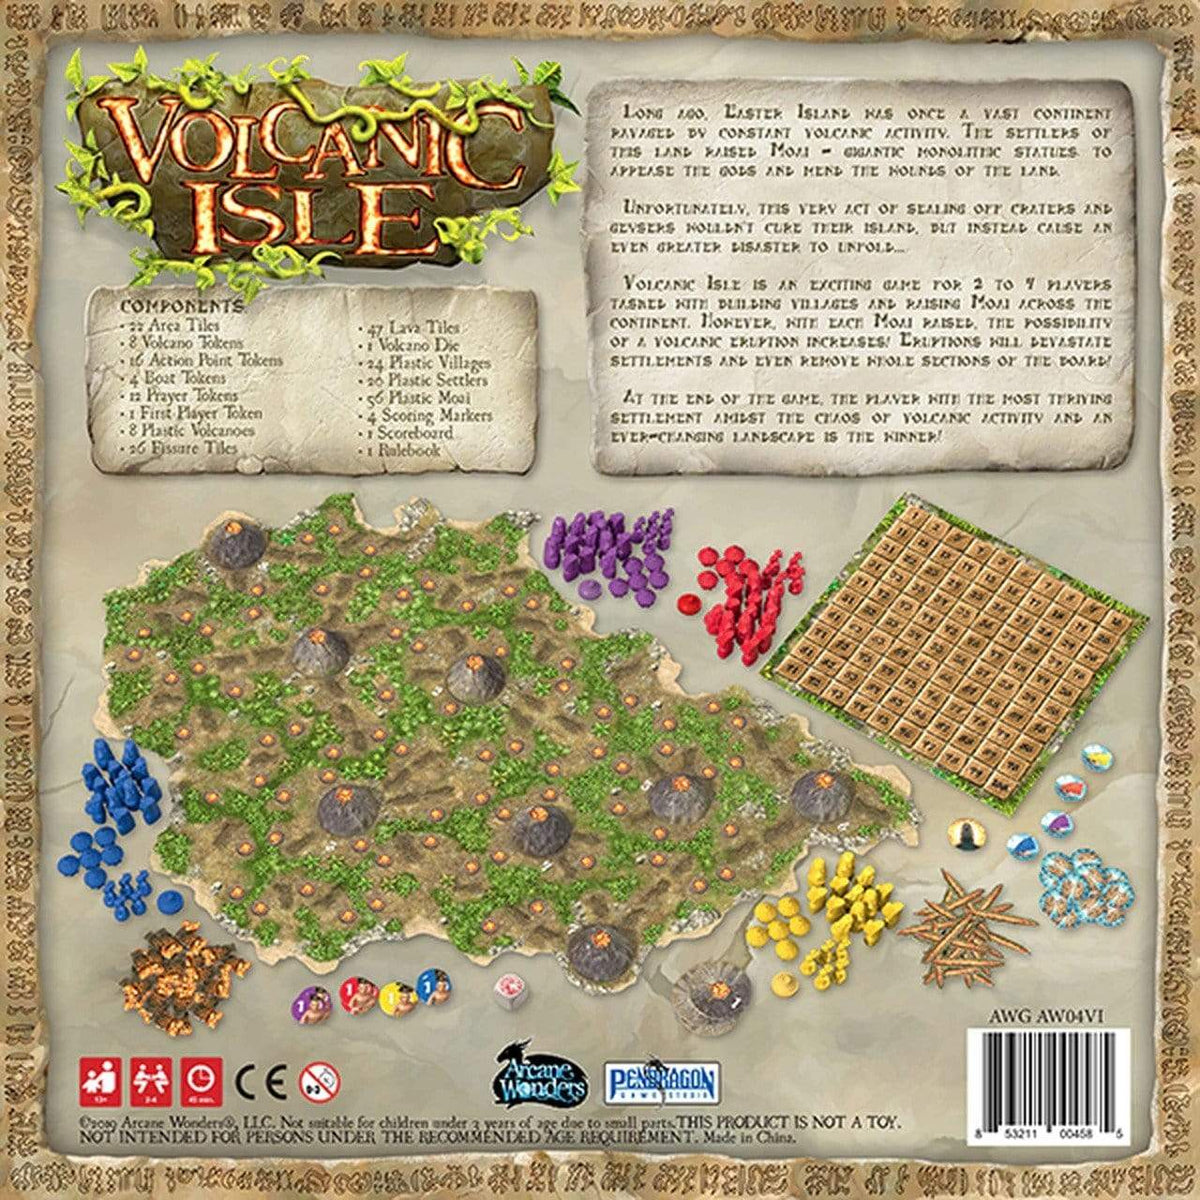 Volcanic Isle Alliance Games Board Games